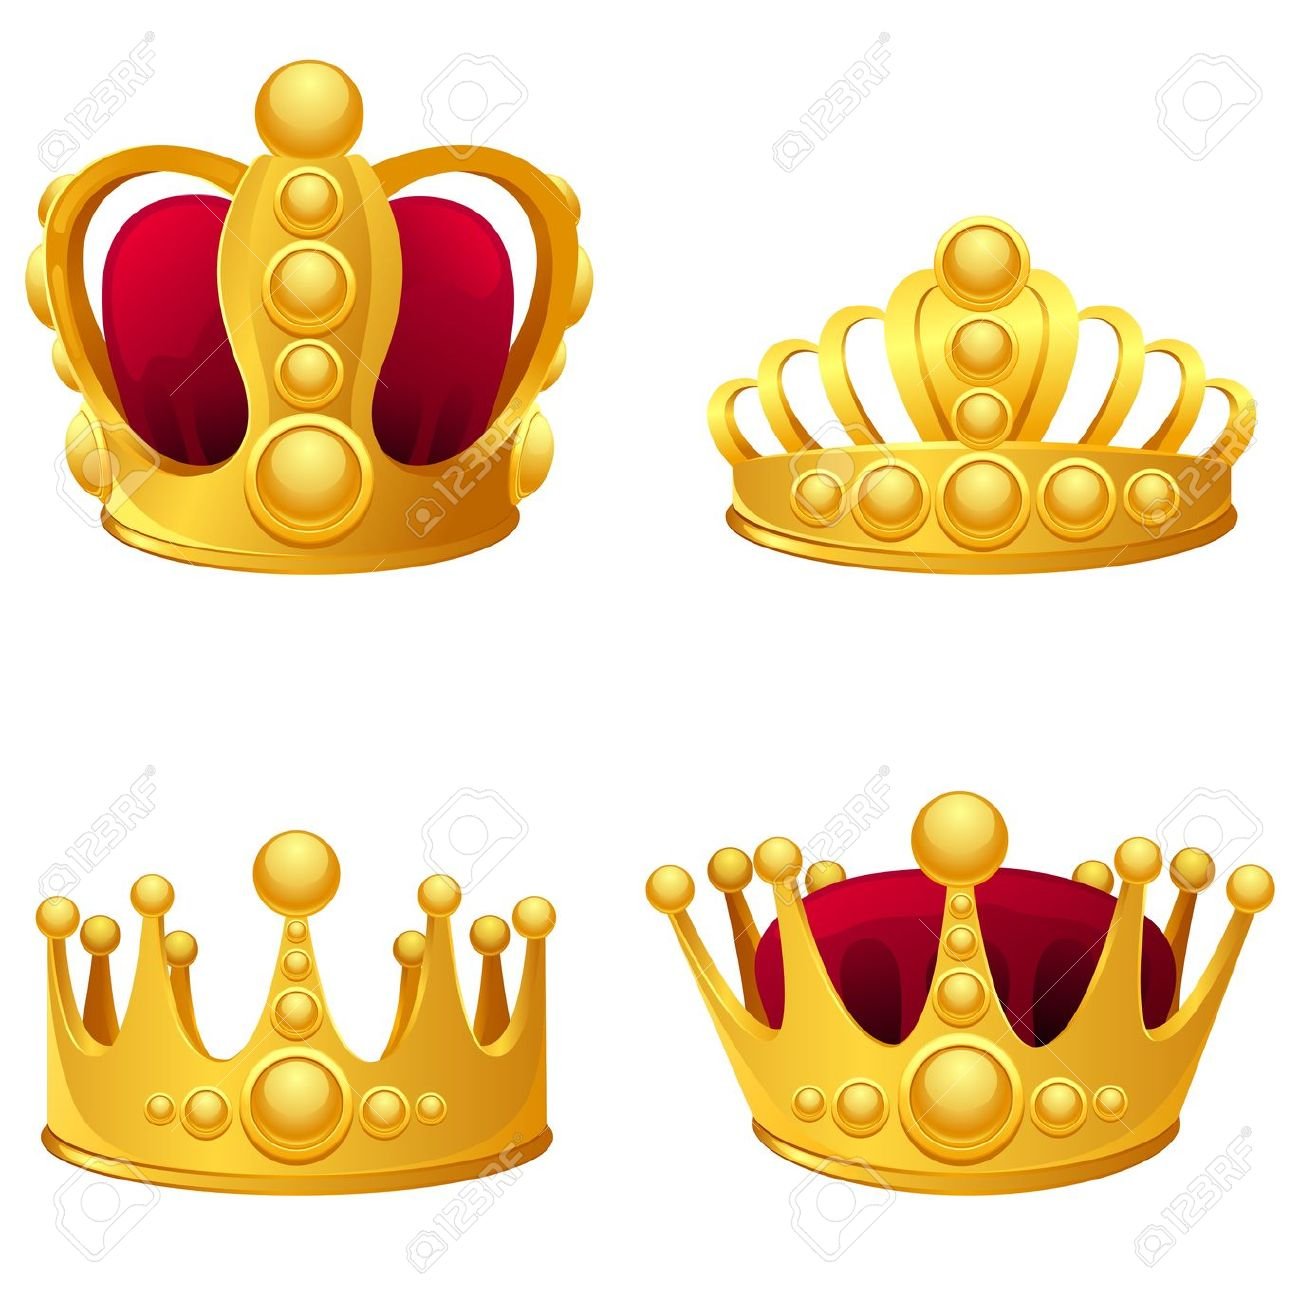 King and queen crowns clipart vector library download King and queen crown clipart 3 » Clipart Station vector library download